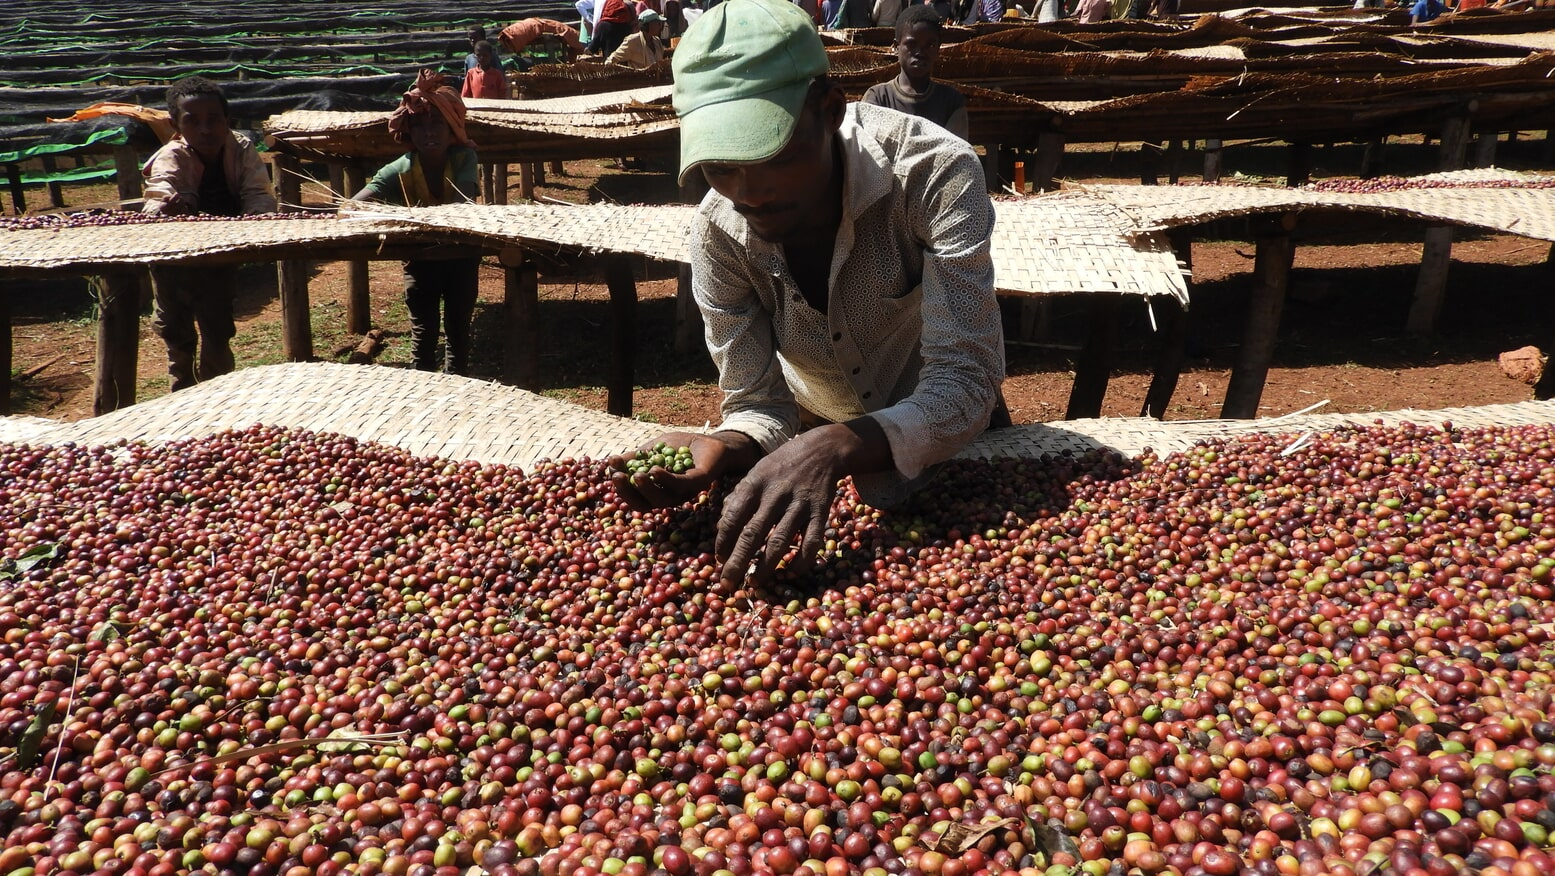 Sun Drying Unwashed Coffee Beans